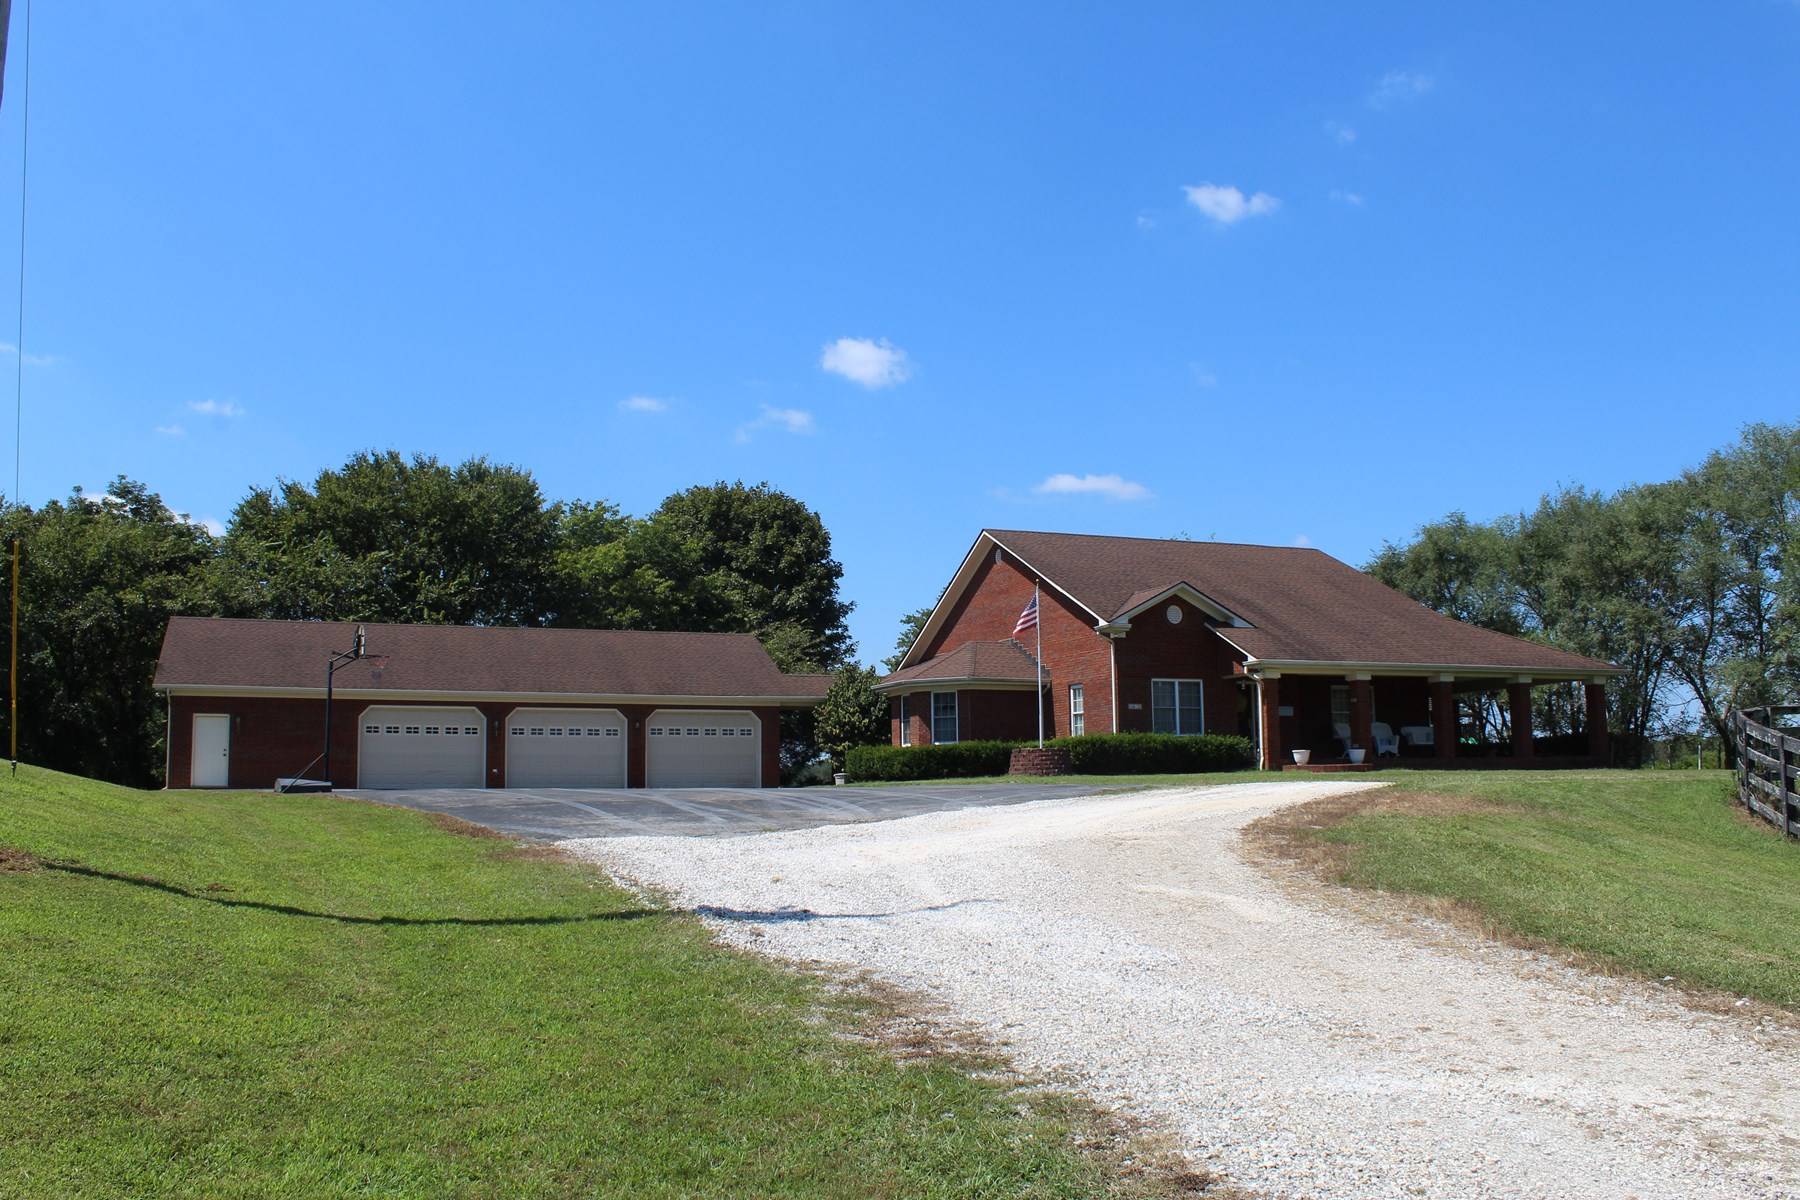 Beautiful Brick Home on 20 Acres Available in Warren Co. Ky. Offered in 4 Tracts